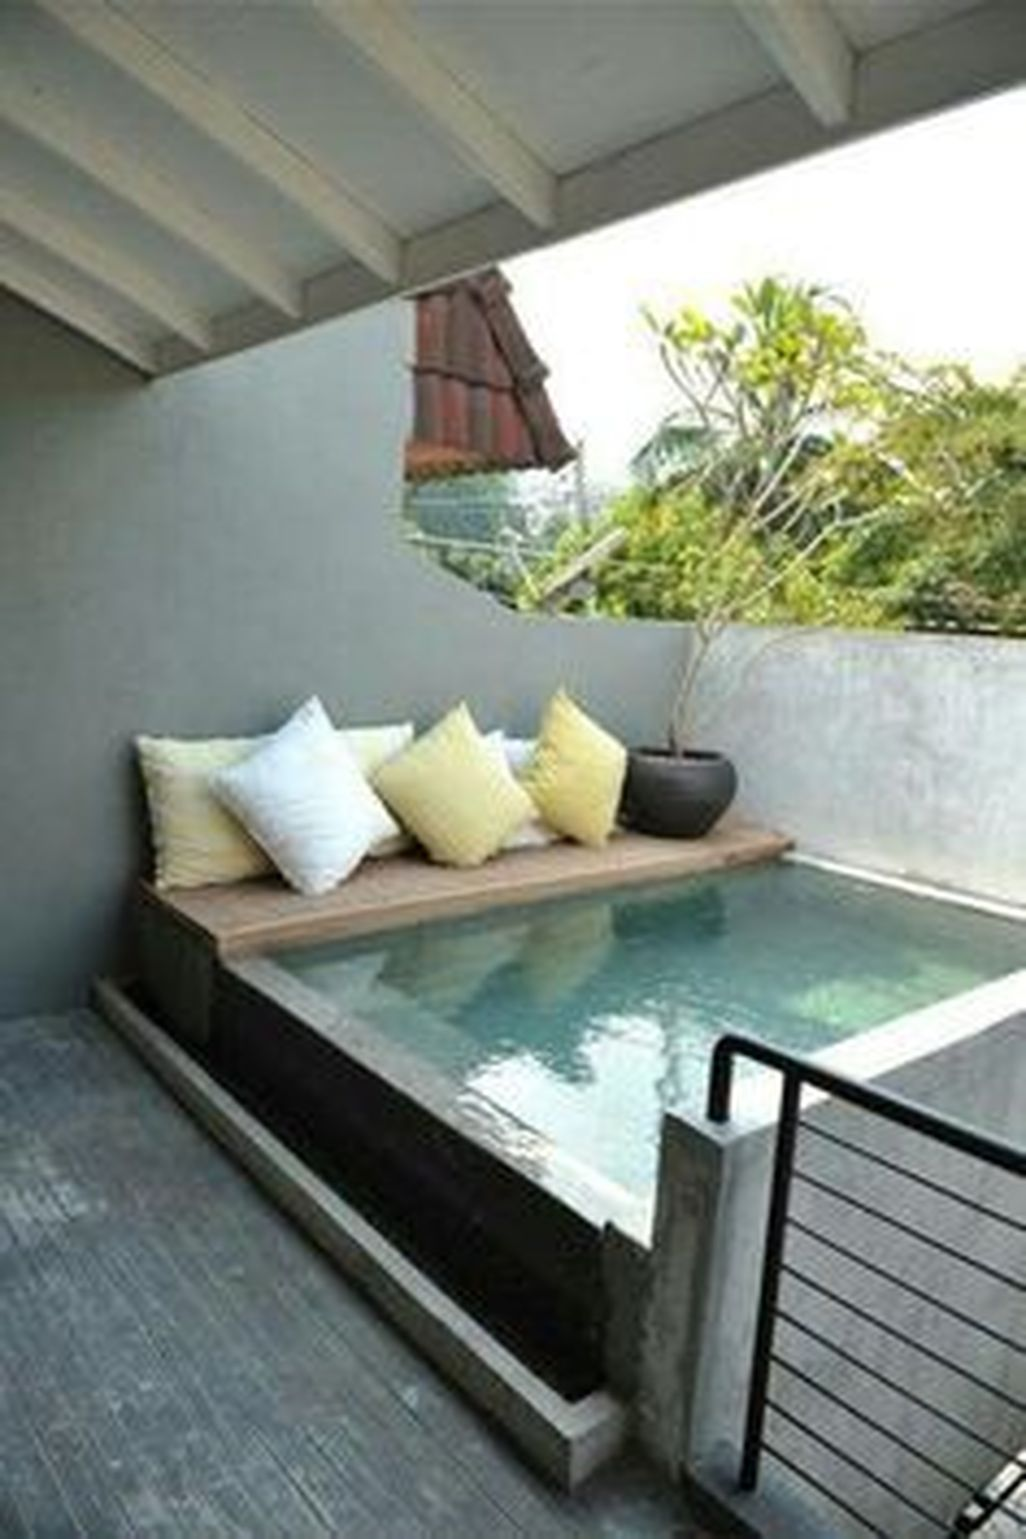 Nice 46 Simple And Simple Pool For Your Home More At Https Trend4homy Com 2018 05 28 46 Simple And Simple Pool Hot Tub Outdoor Dream Patio Small Pool Design